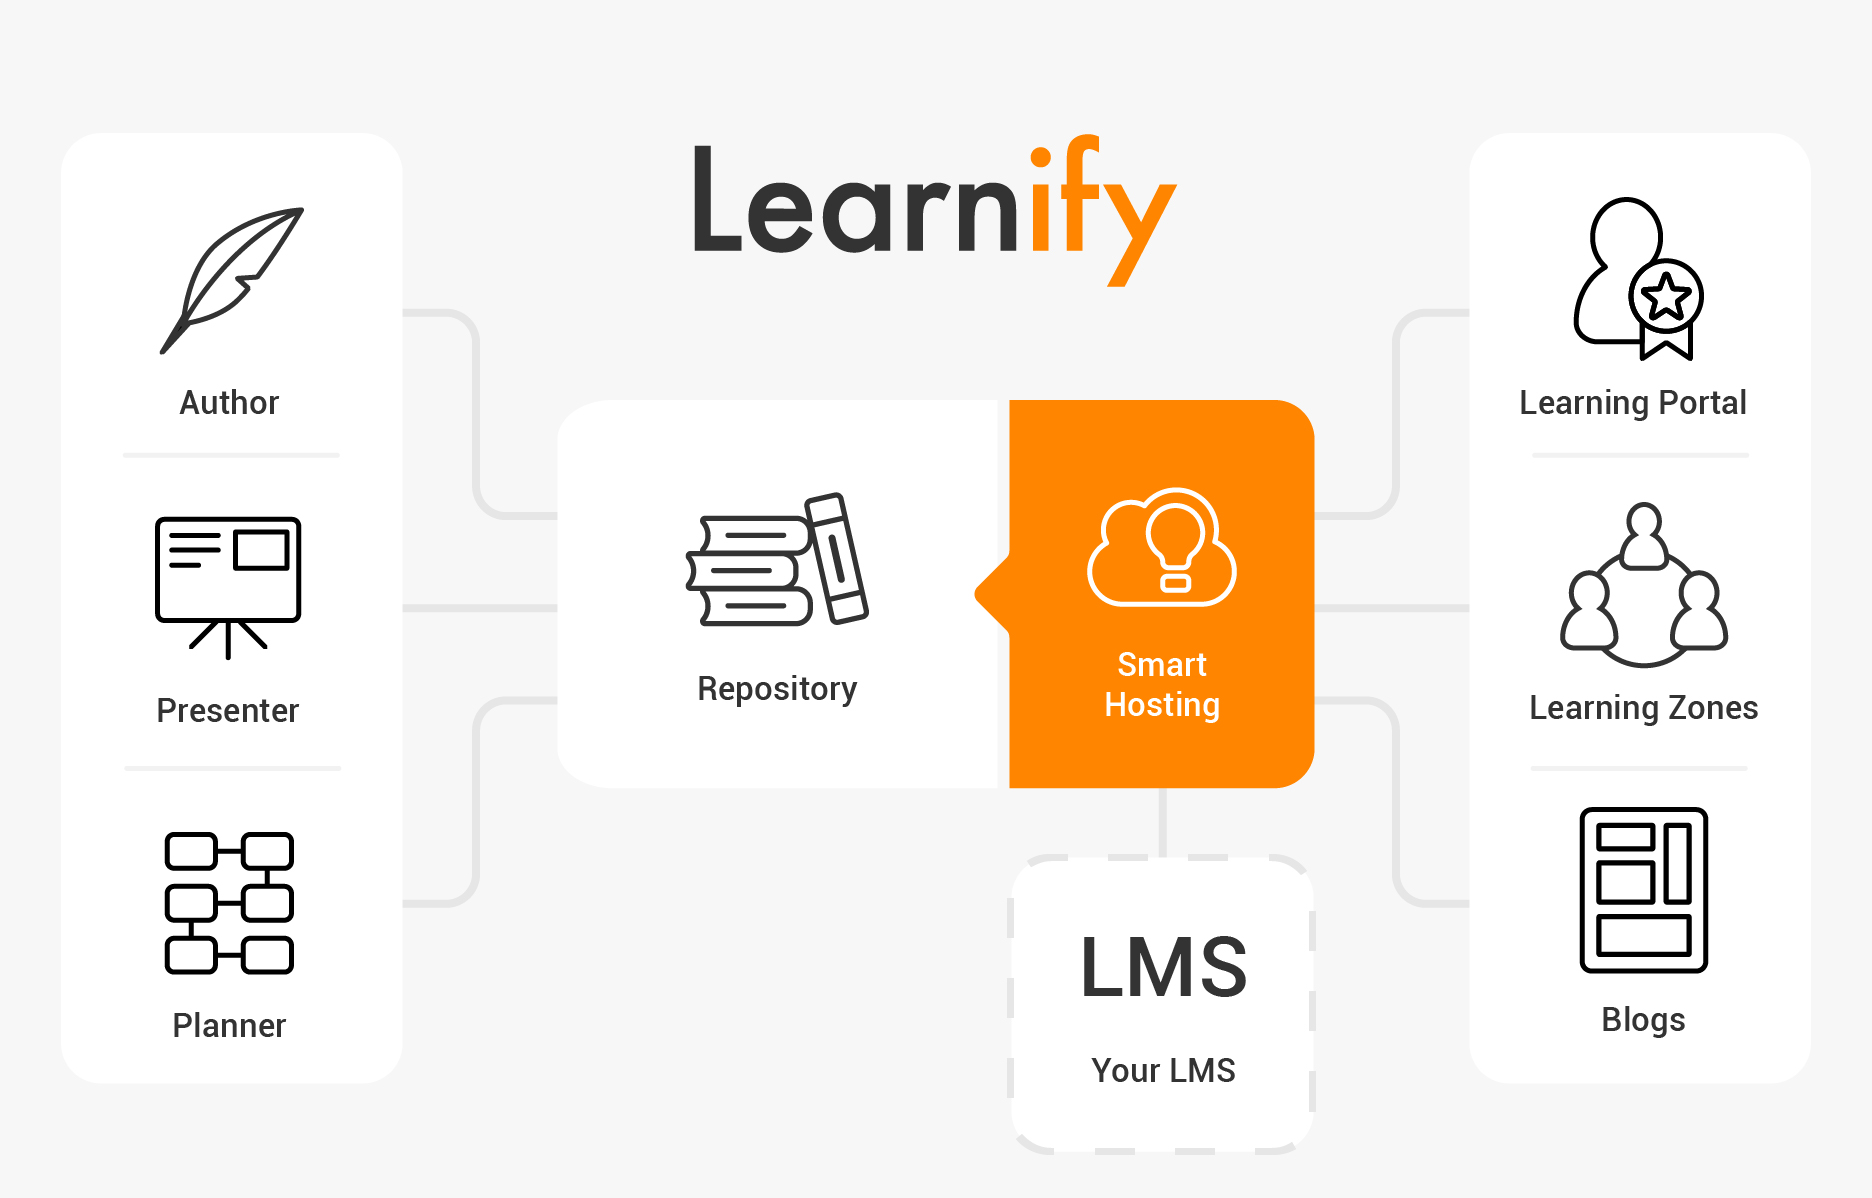 Learnify Tools Overview